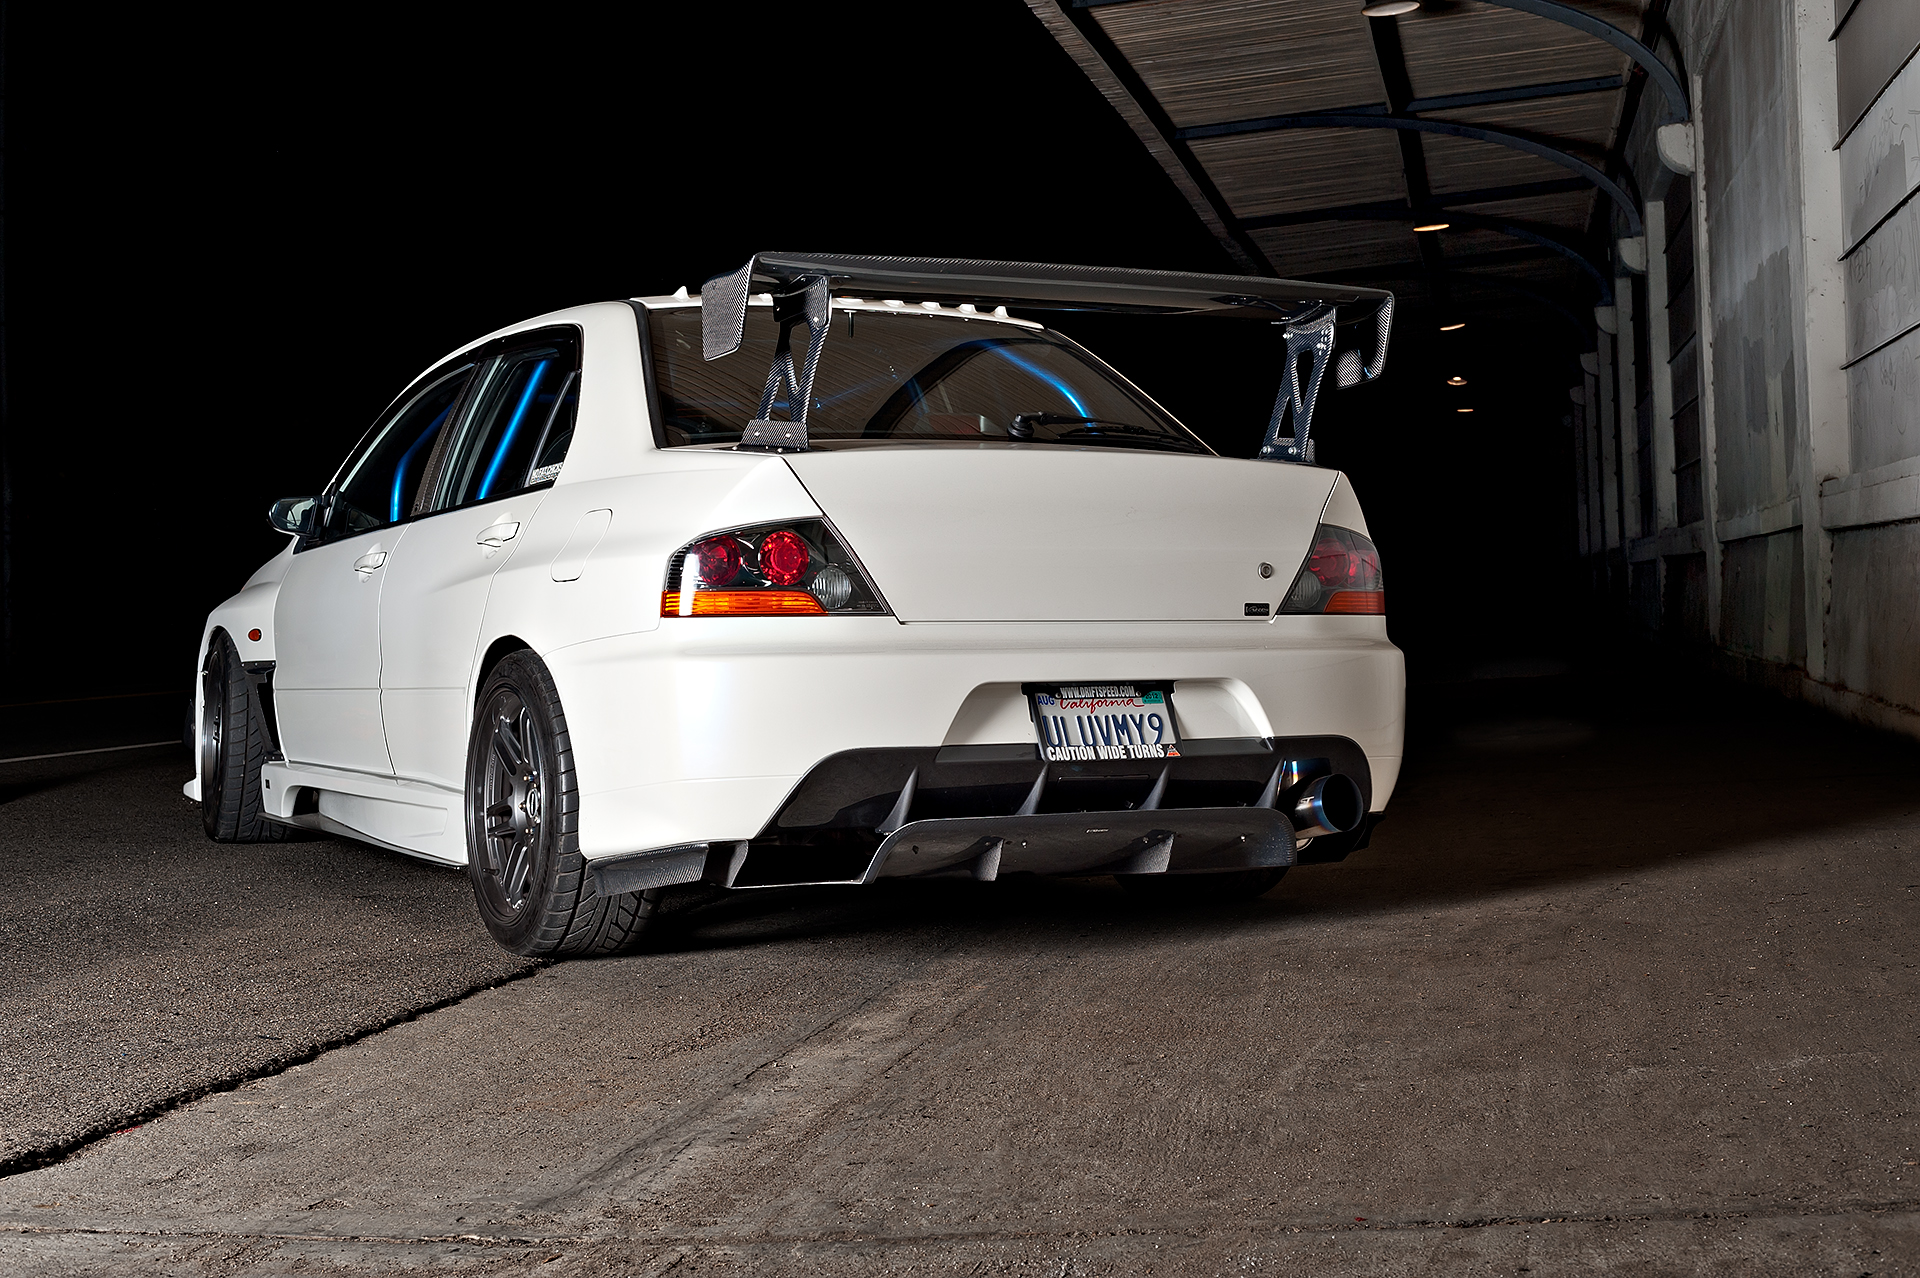 Rear 3/4 shot of White Mitsubishi Evo IX with Varis body kit